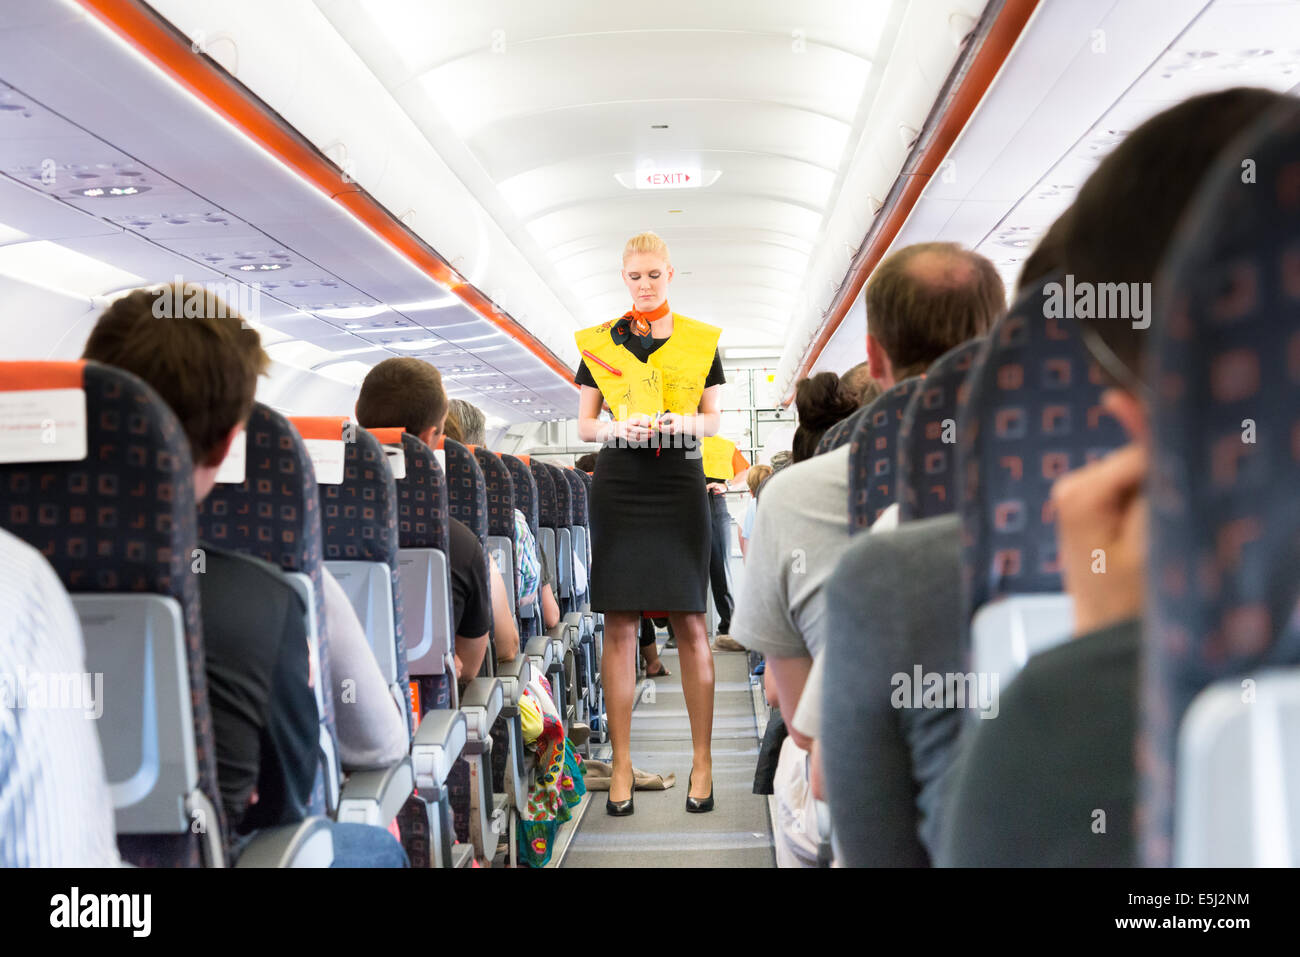 EasyJet cabin crew demonstrating use of lifejacket during safety procedure - Stock Image